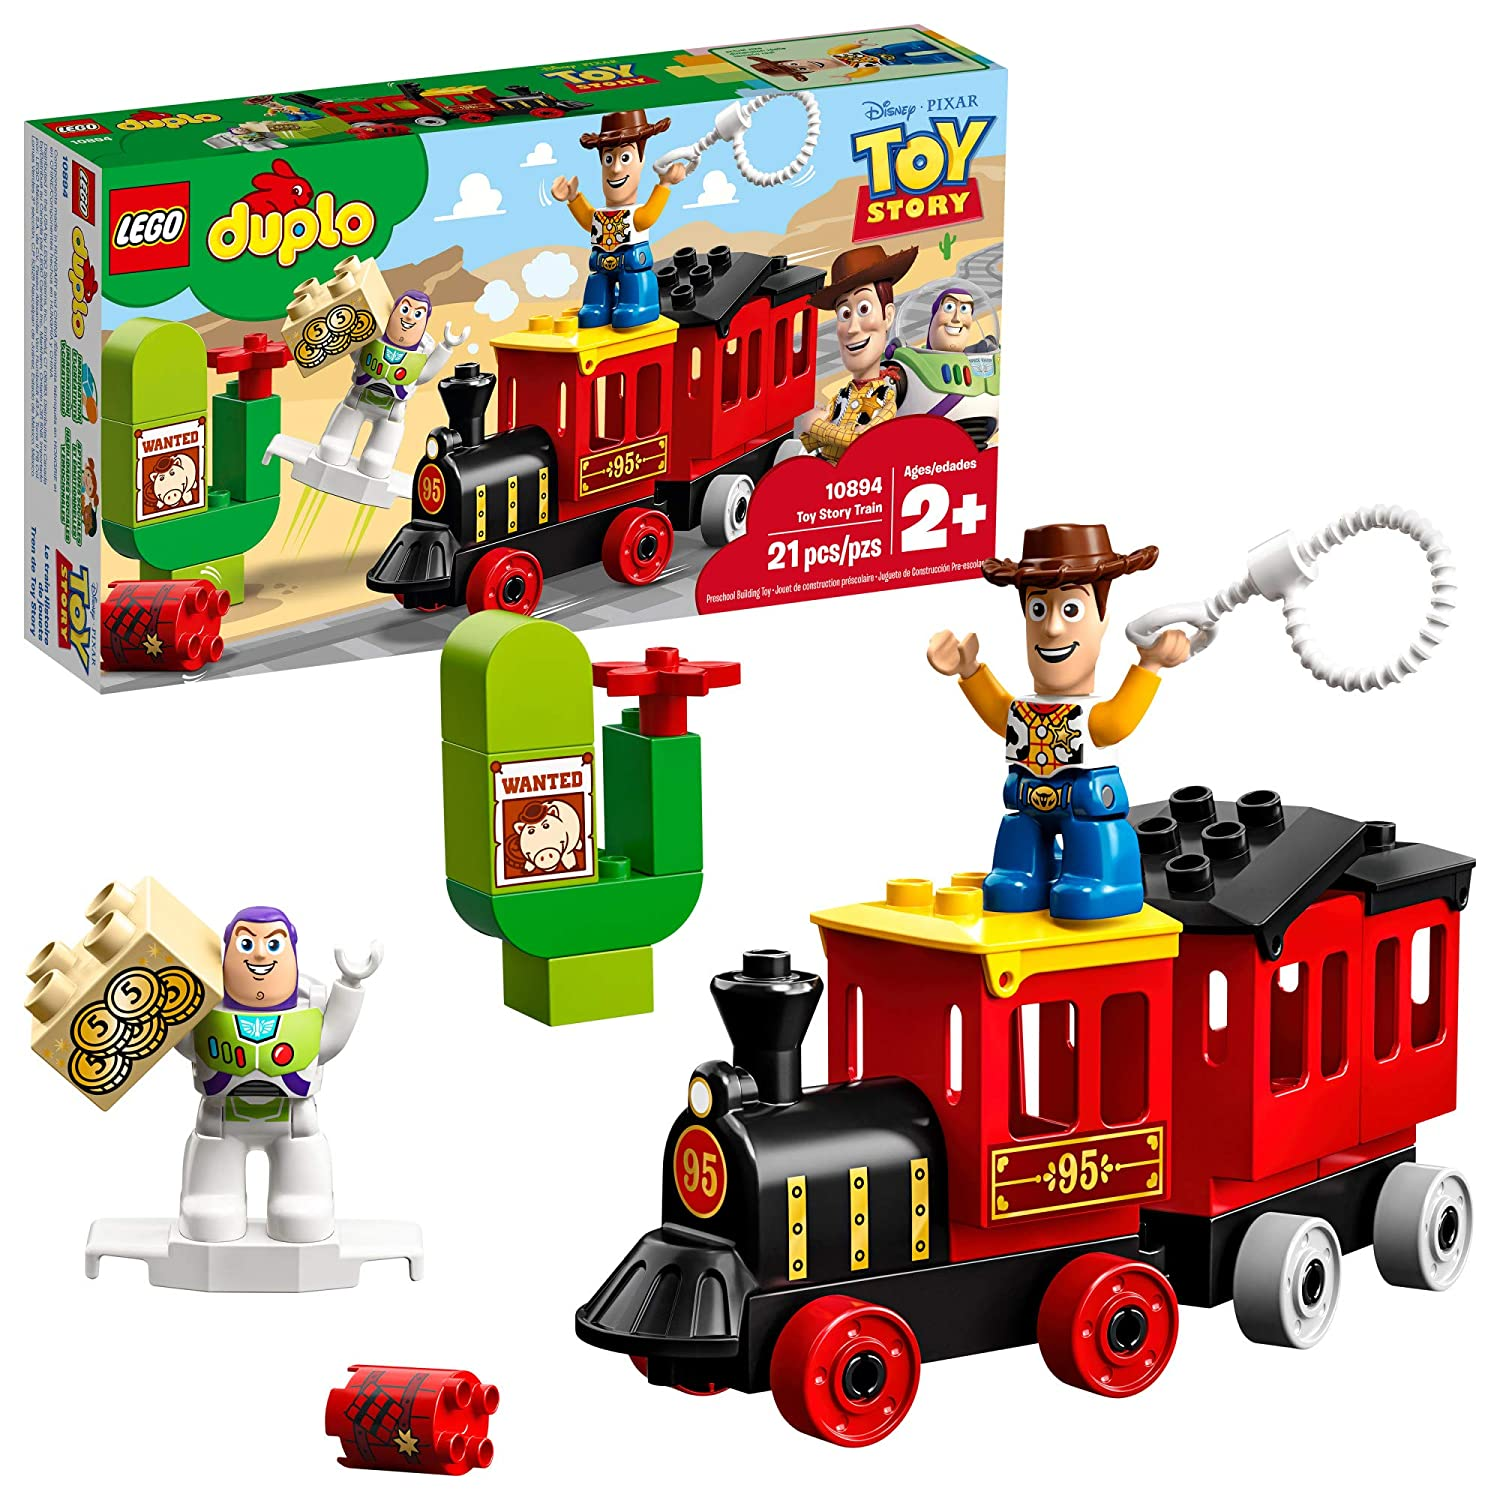 LEGO DUPLO Disney Pixar Toy Story Train 10894 Perfect for Preschoolers, Toddler Train Set includes Toy Story Character favorites Buzz Lightyear and Woody(21 Pieces)